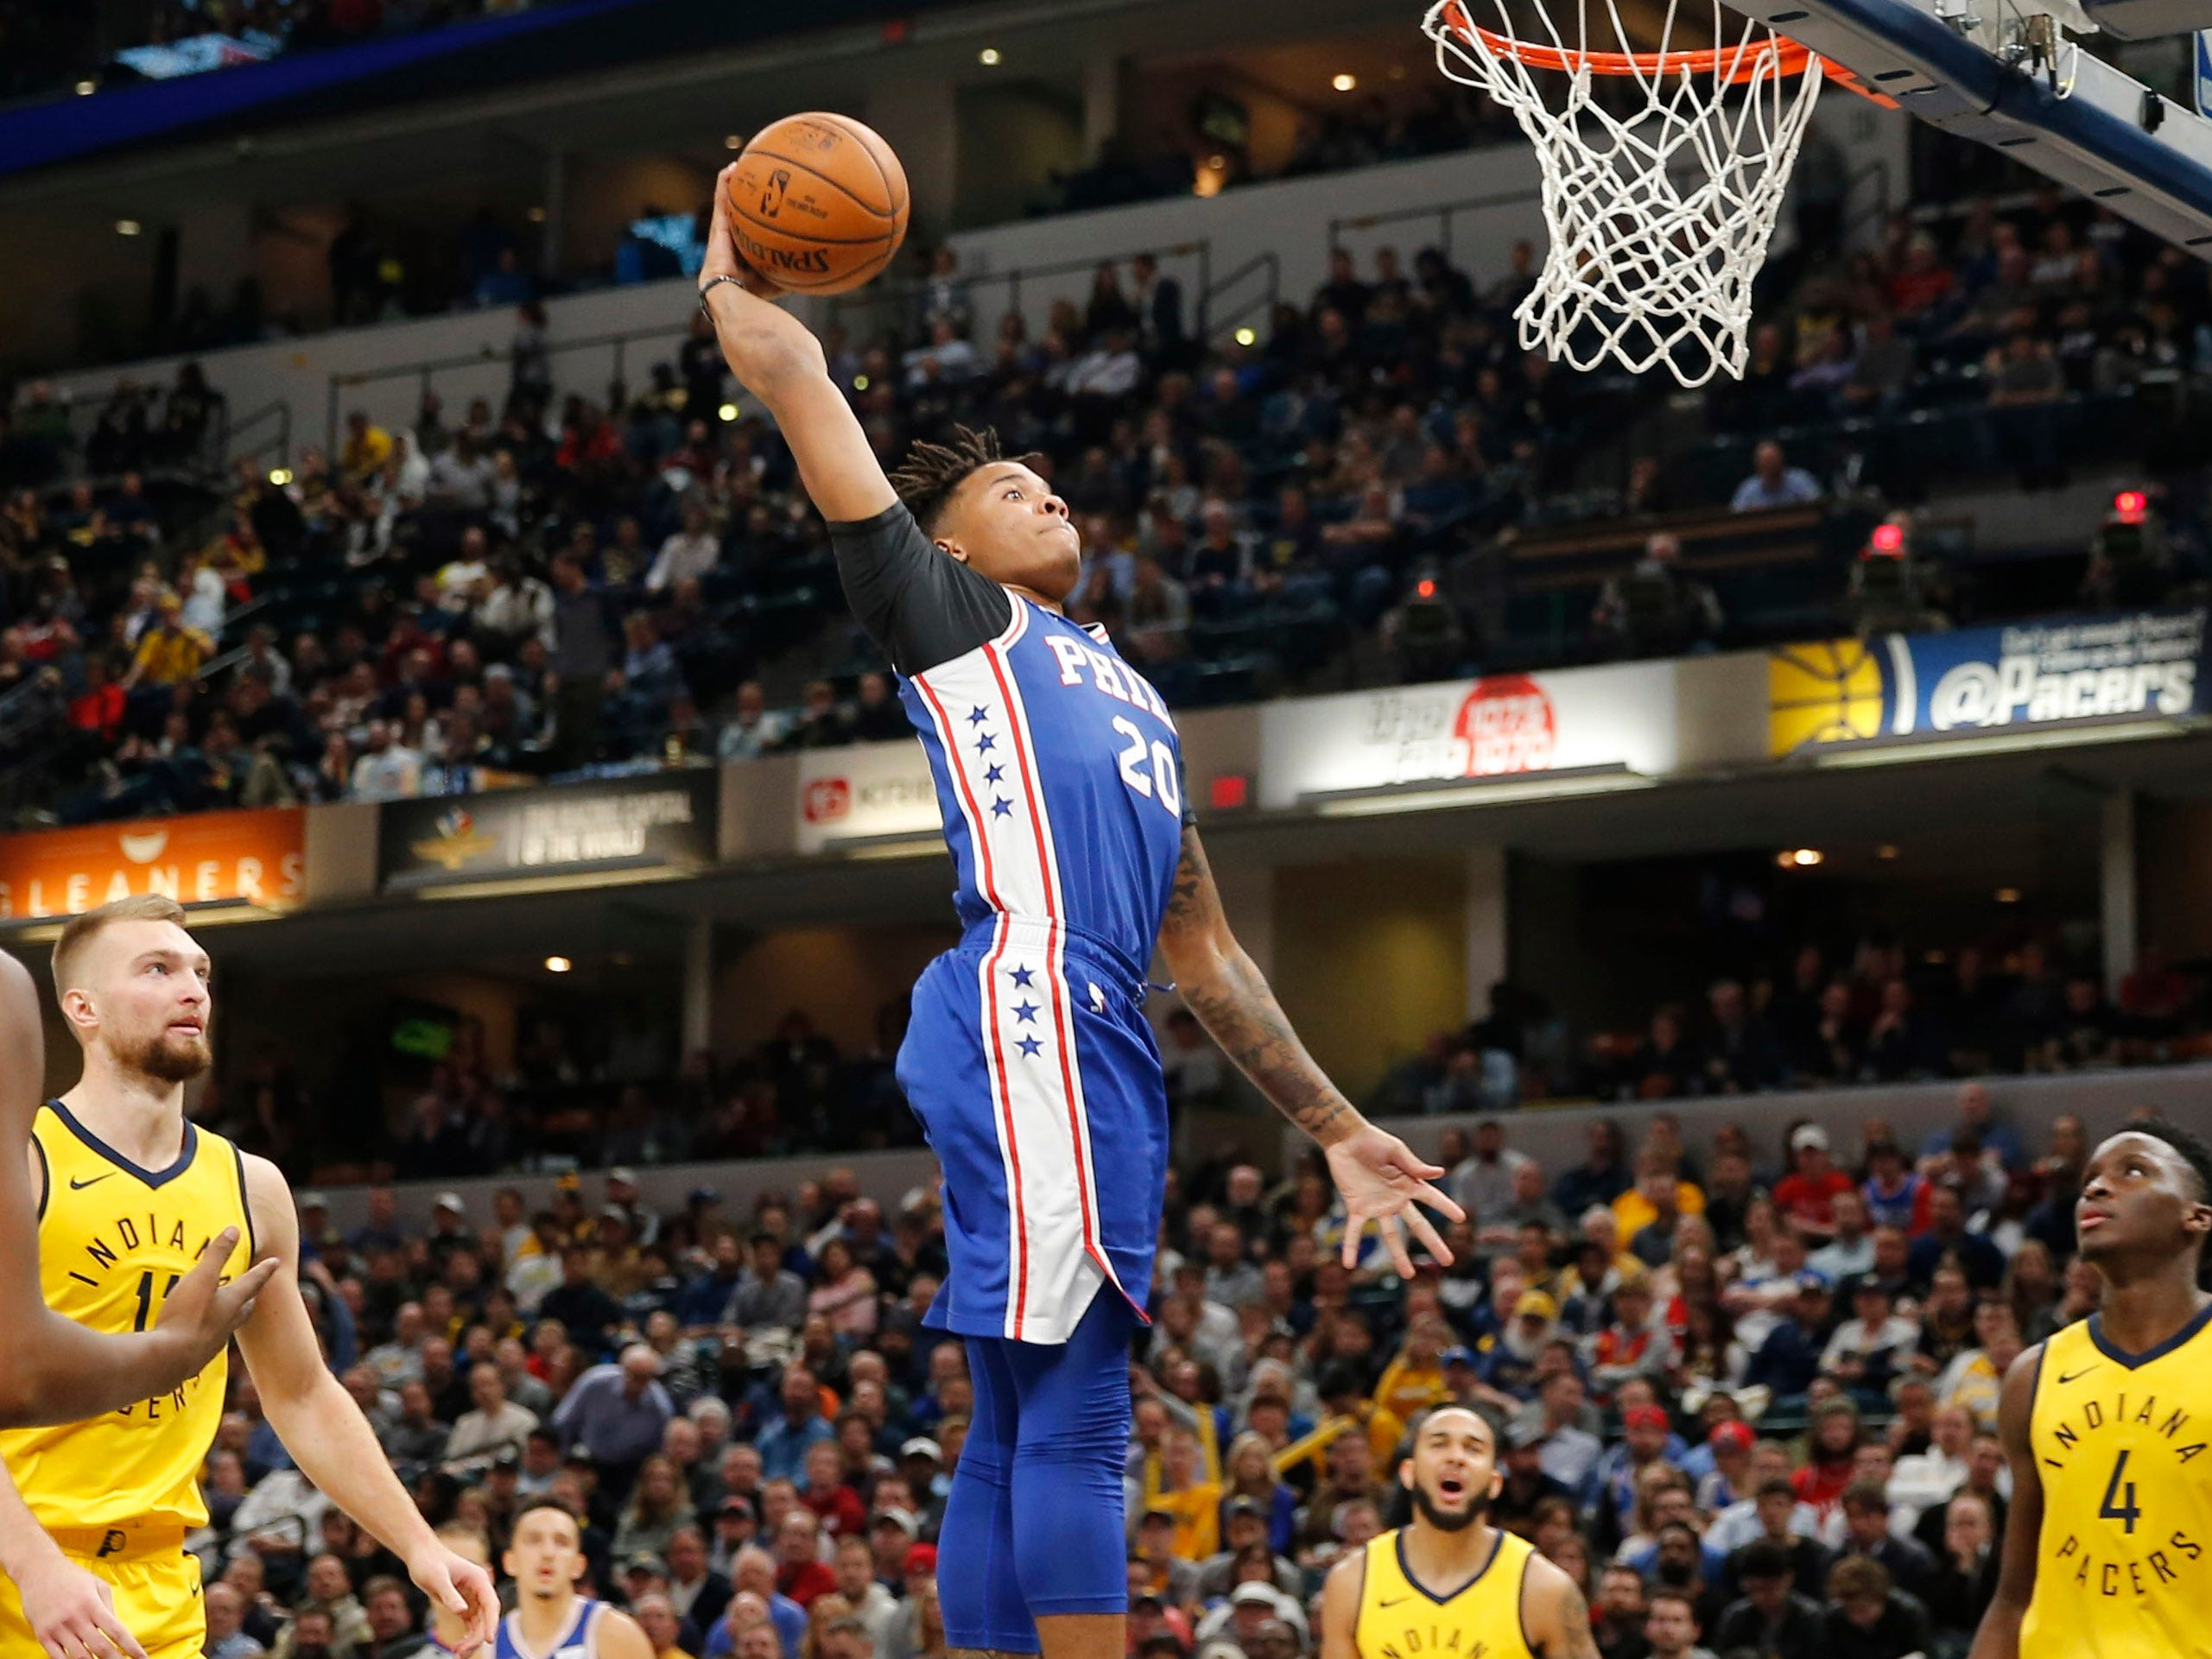 Nov. 7: 76ers guard Markelle Fultz rises up for a one-handed flush during the second half against the Pacers in Indianapolis.